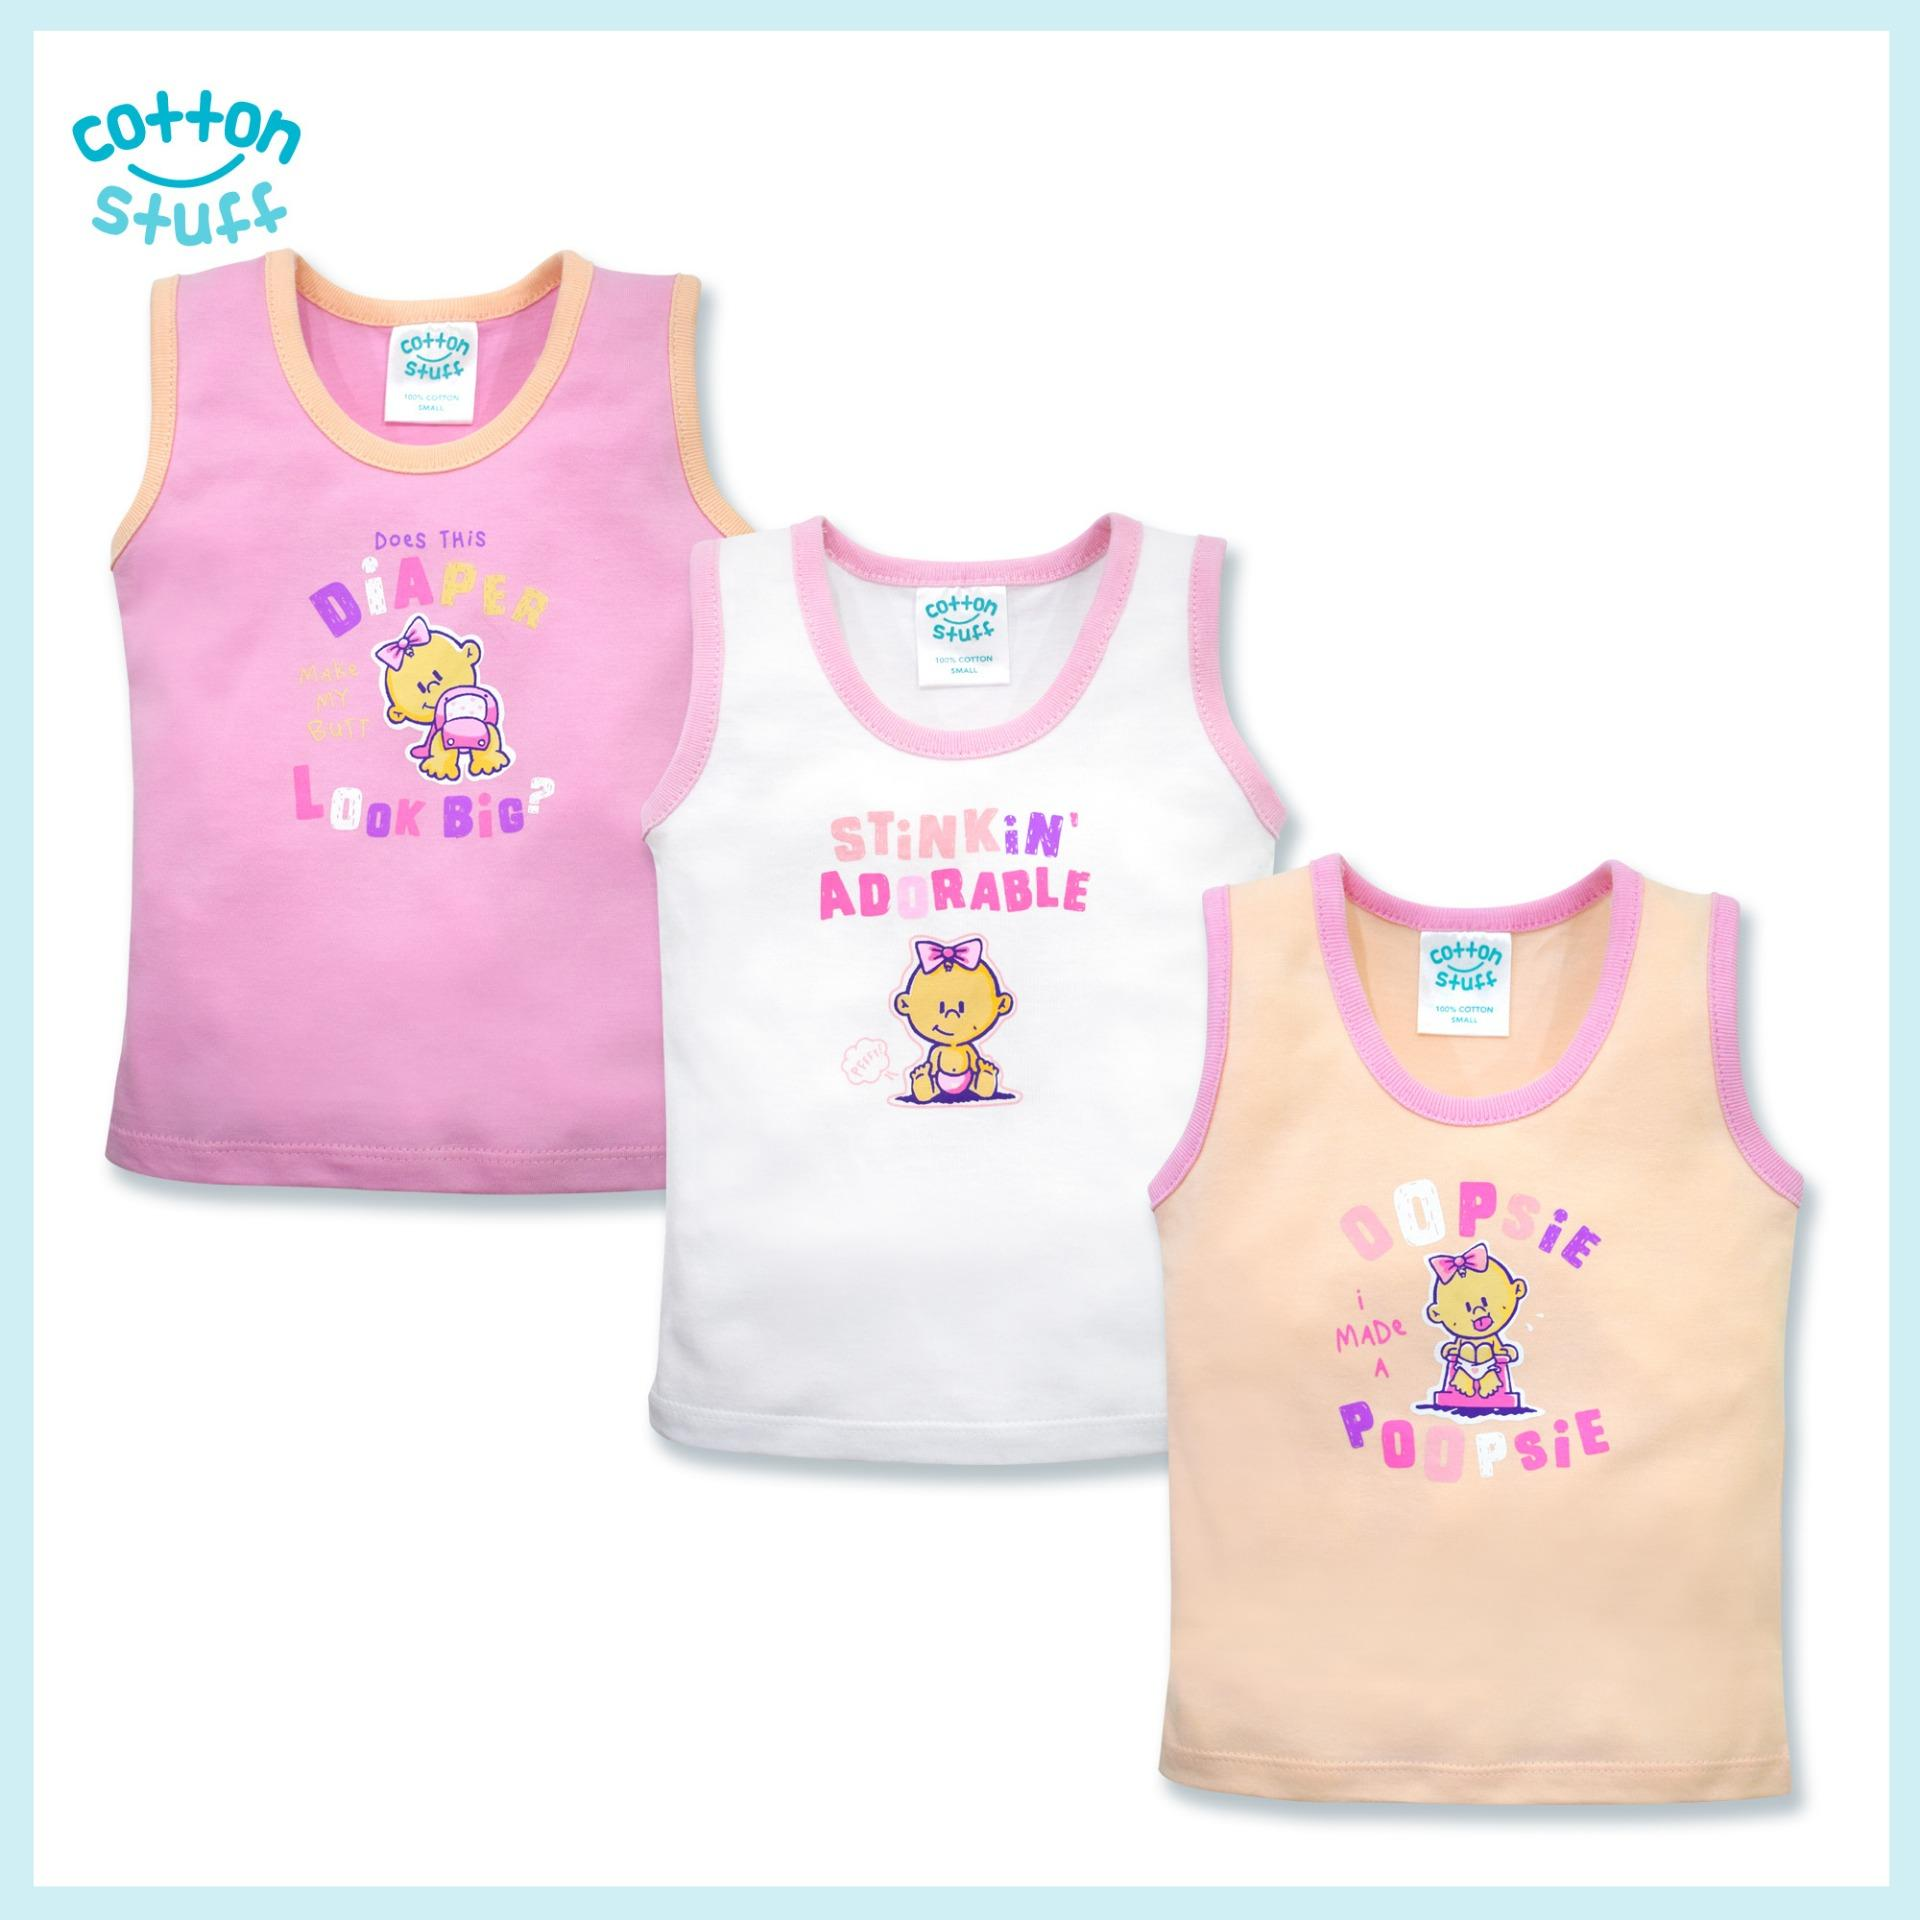 From The Crib - 3-Piece Sando (stinking Cute - Girl) By Cotton Stuff.